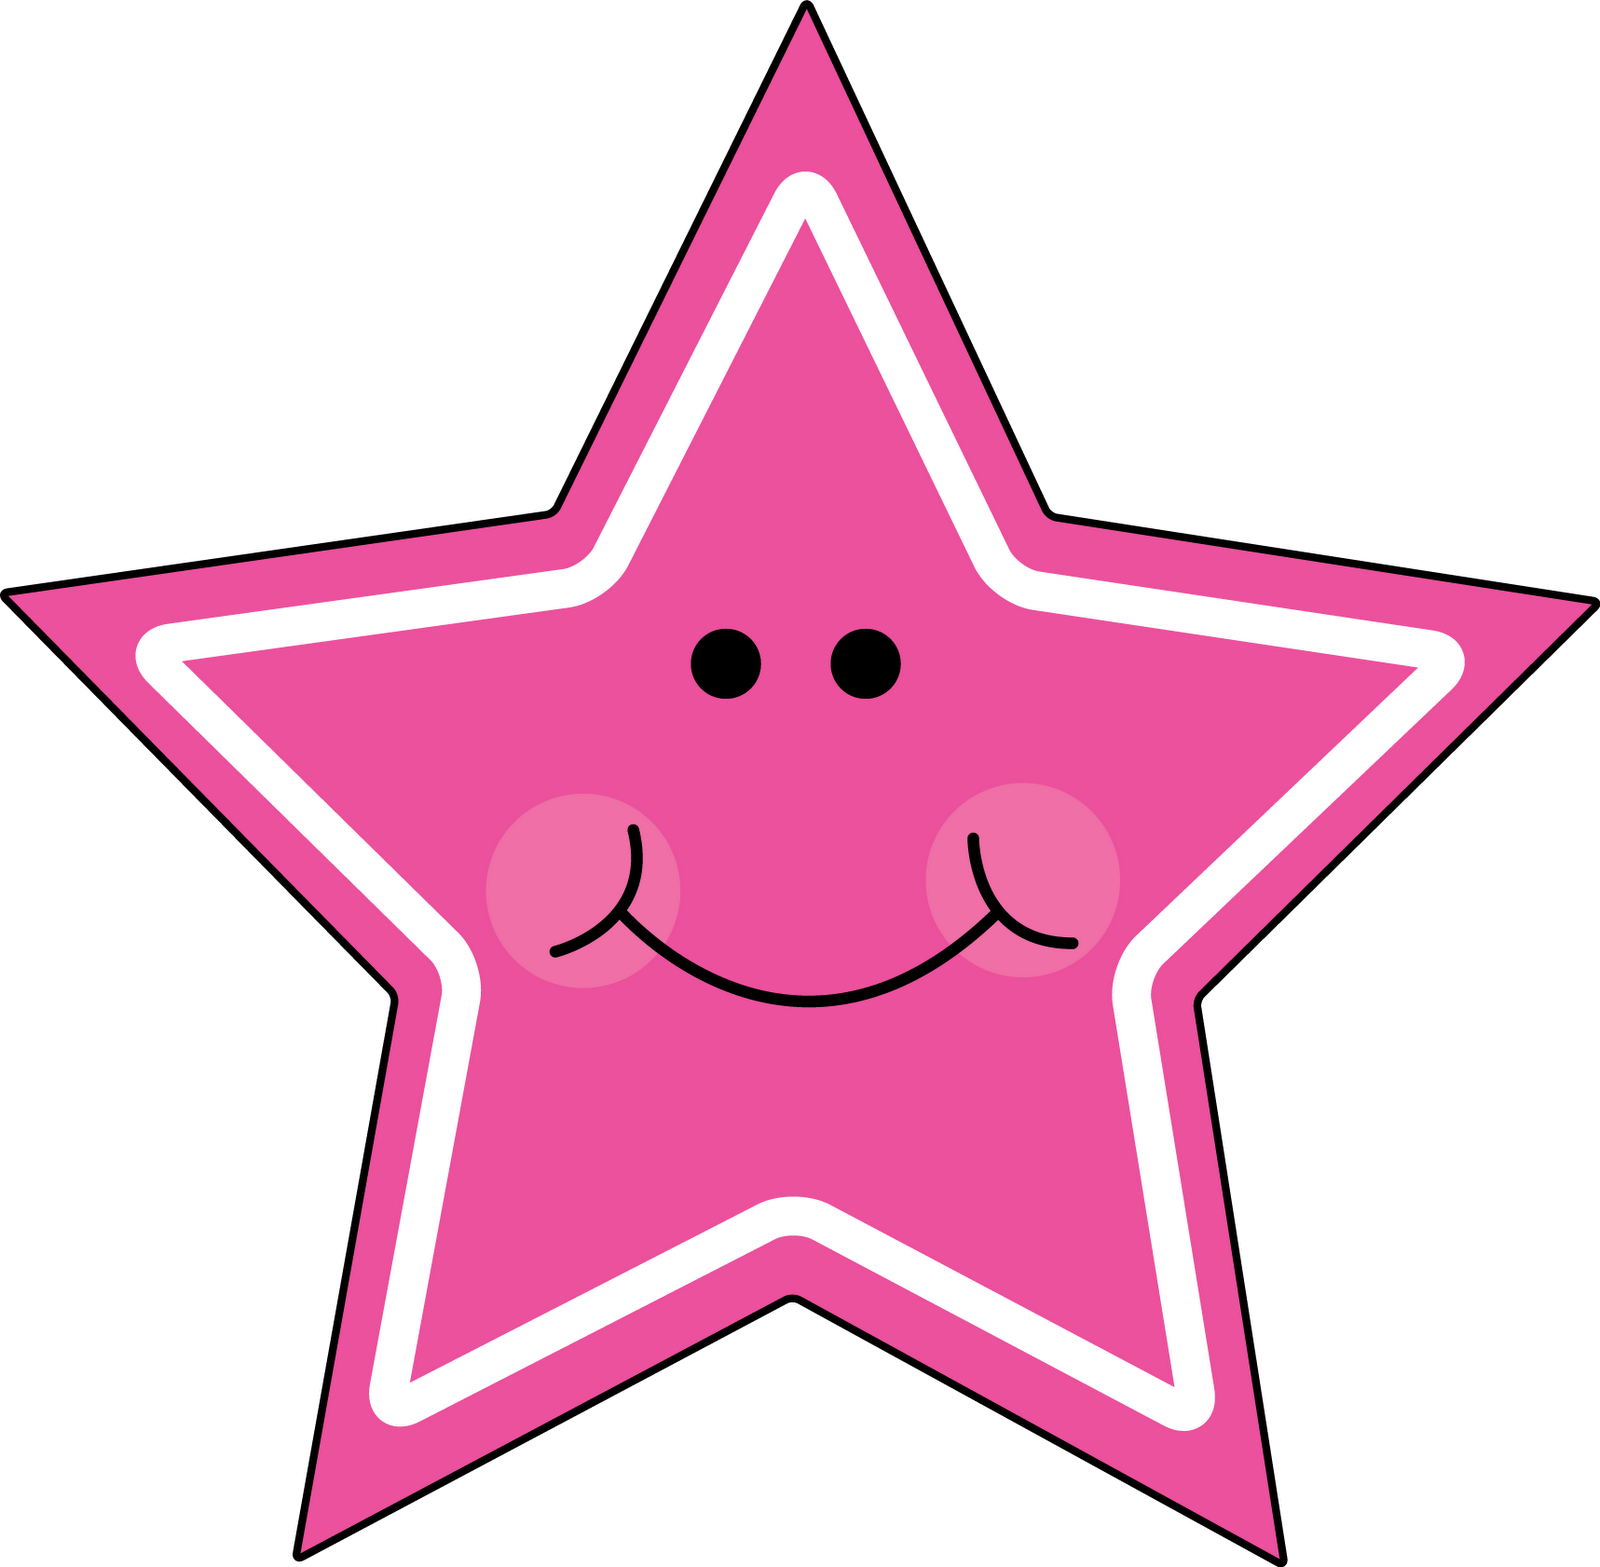 Star Shape Clipart - Cliparts.co: cliparts.co/star-shape-clipart